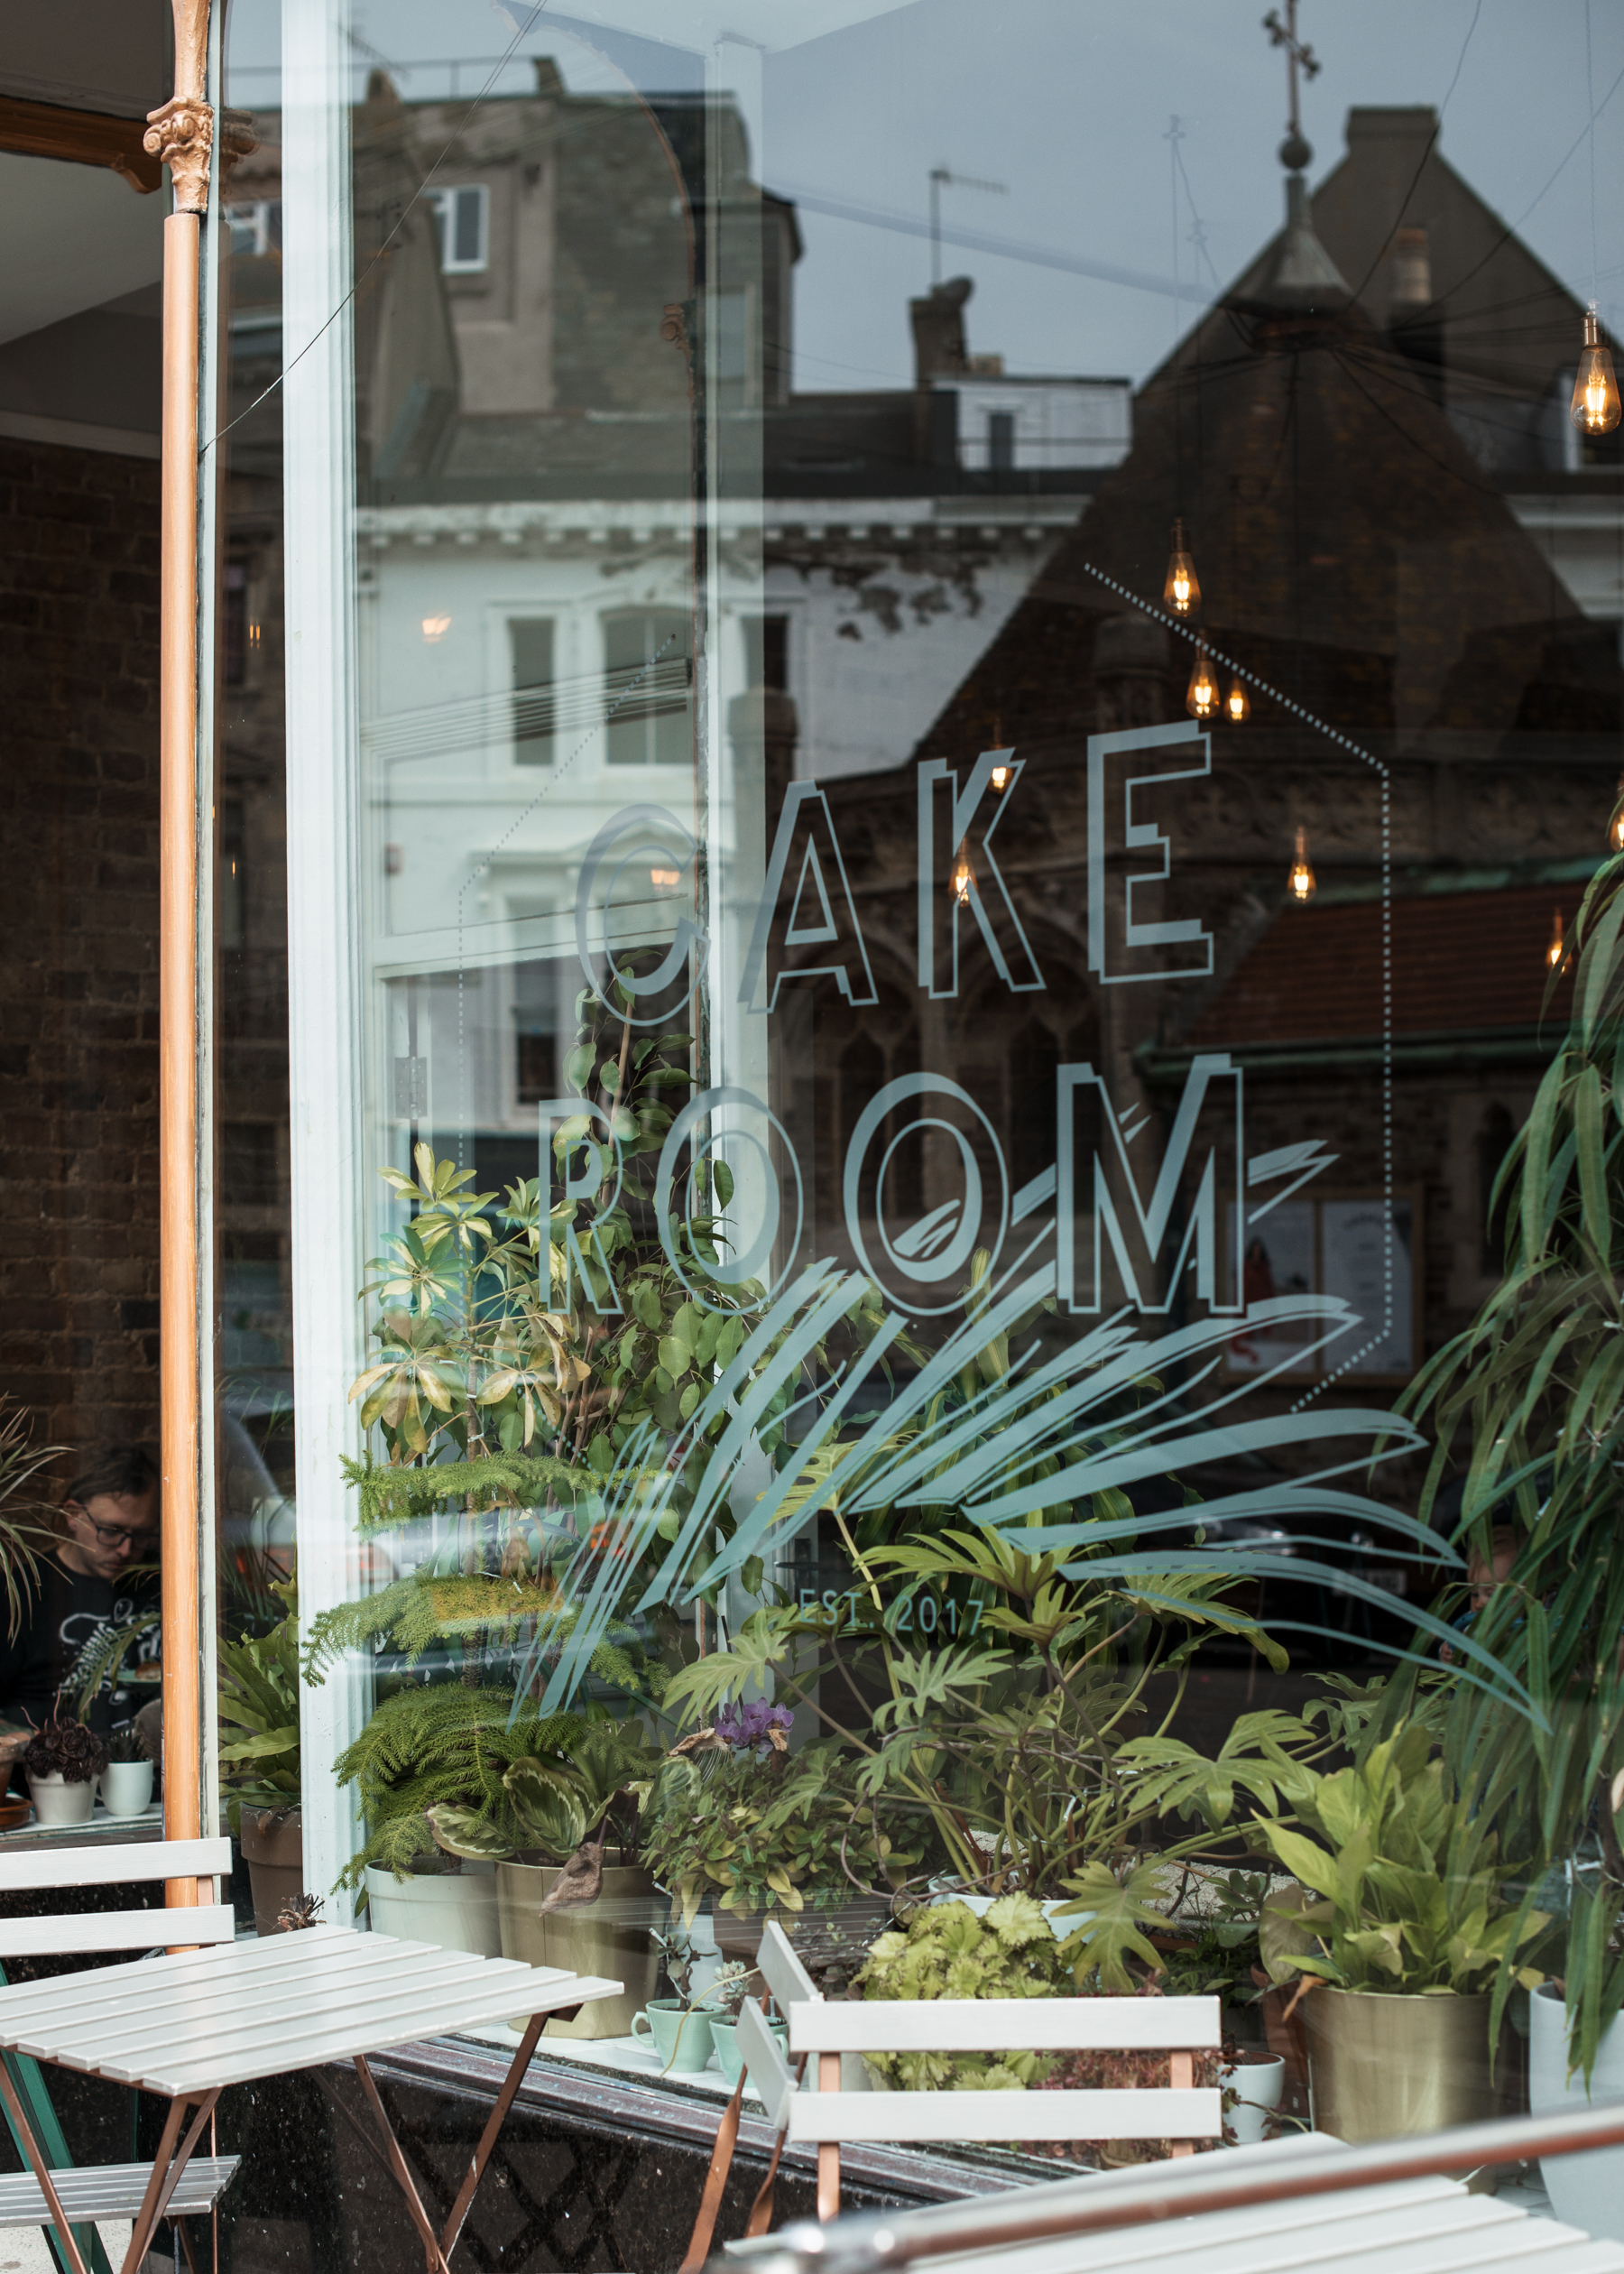 91 Magazine Seek Inspire Create event in Hastings - candle making with Lagom at Cake Room